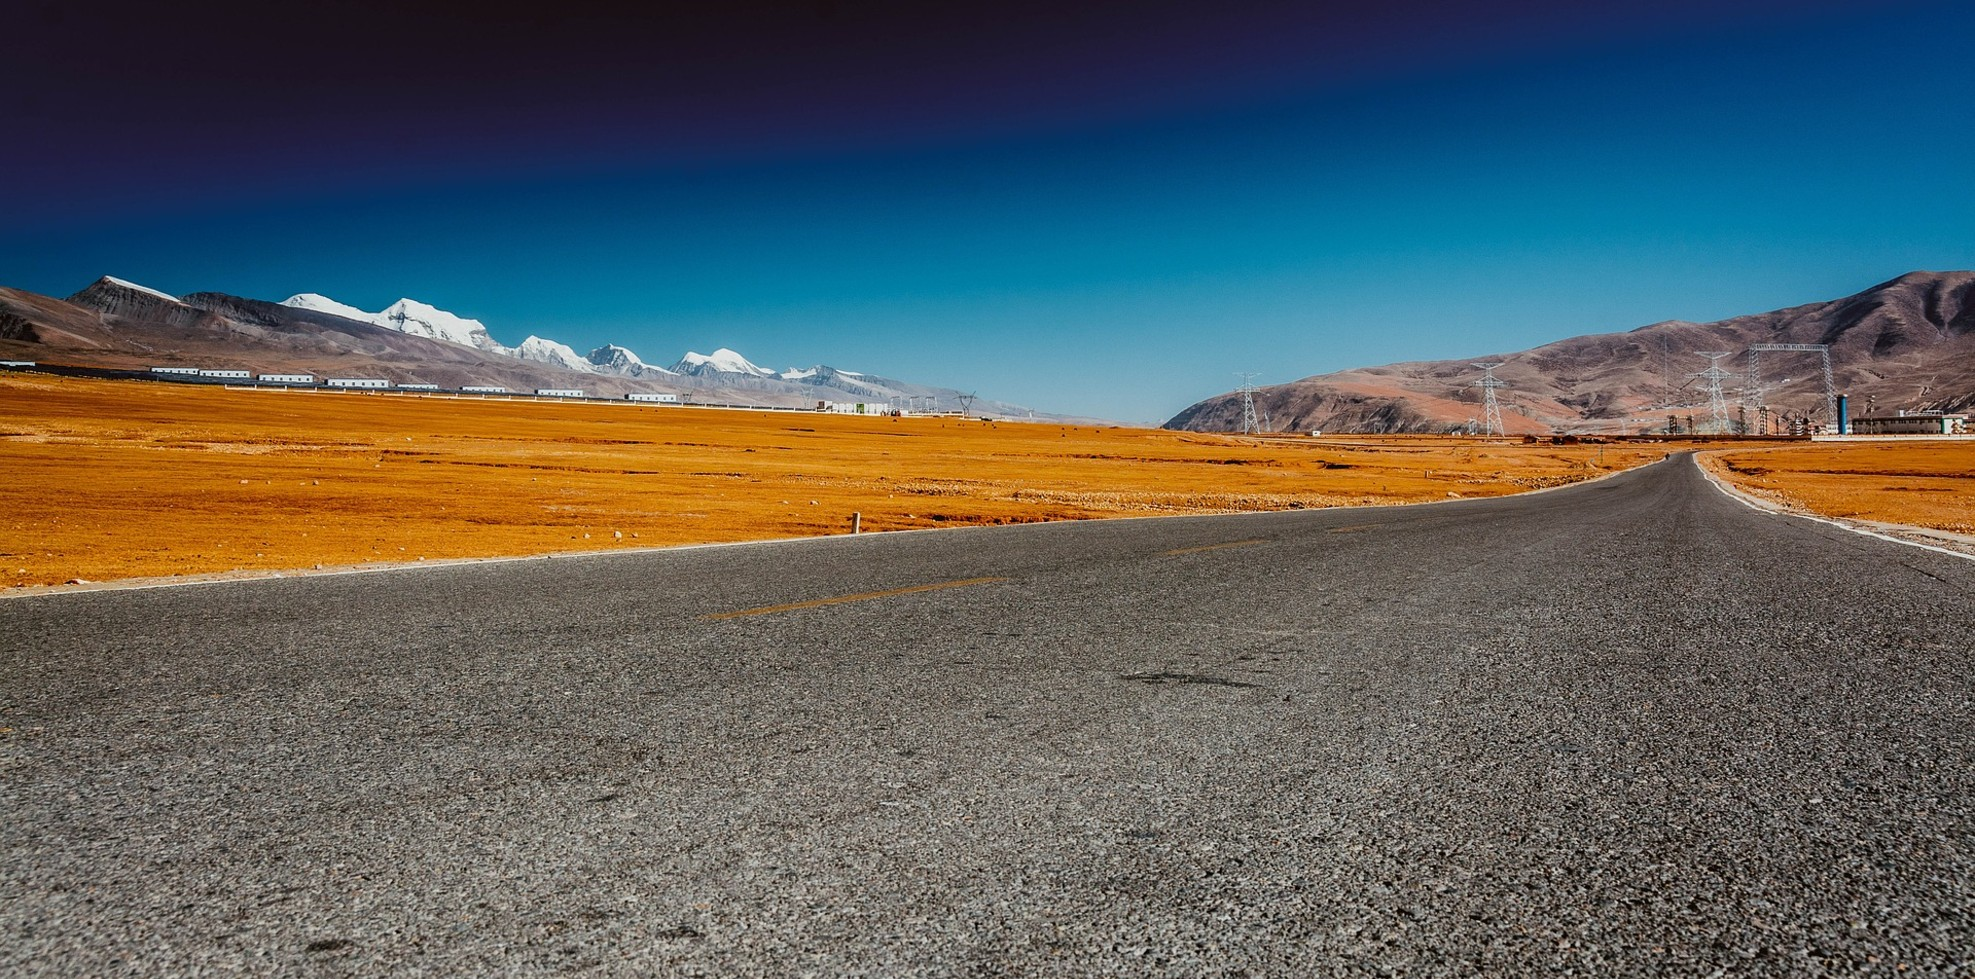 Short Friendship Highway Overland Tibet Tour